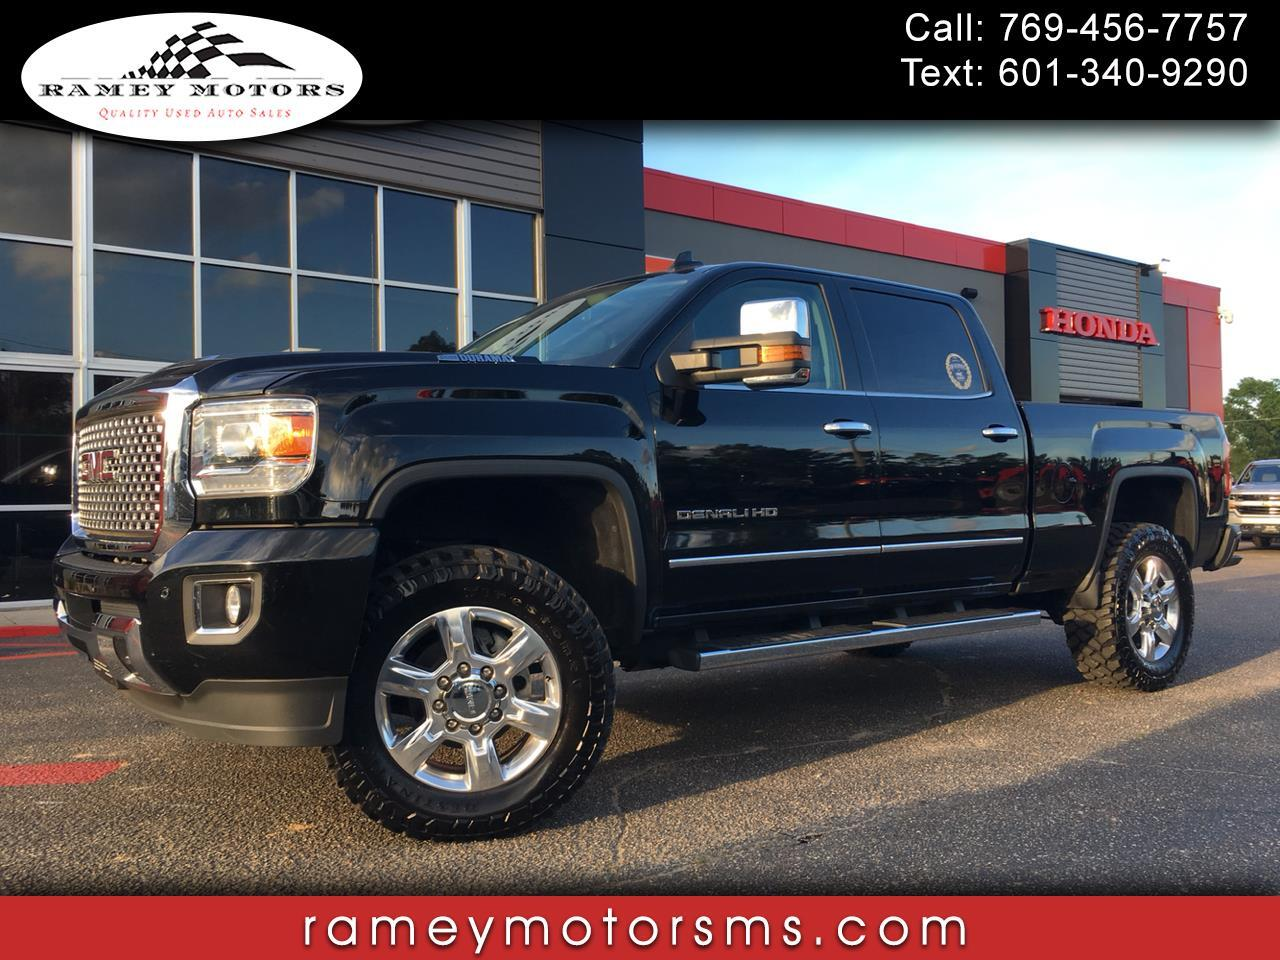 2017 GMC Sierra 2500HD 4WD CREWCAB SHORTBED DENALI CUSTOM LEVELED